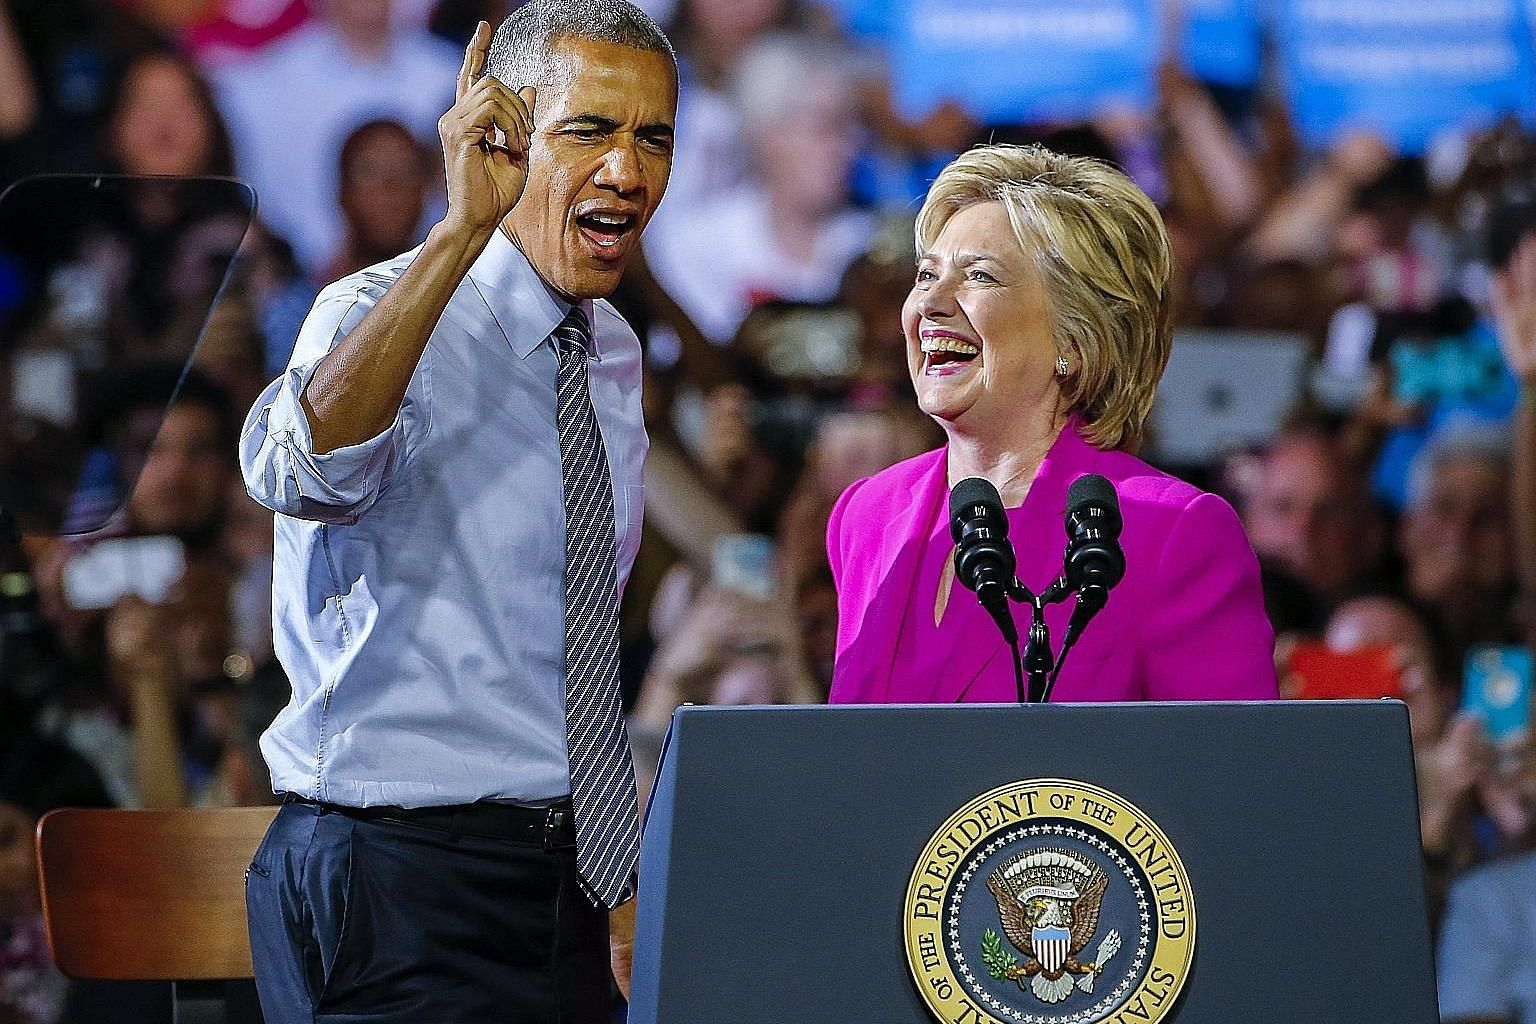 President Obama making a forceful plea to voters at Mrs Clinton's rally in Charlotte, North Carolina, on Tuesday - the first time the two of them had appeared together during her campaign for the presidency.